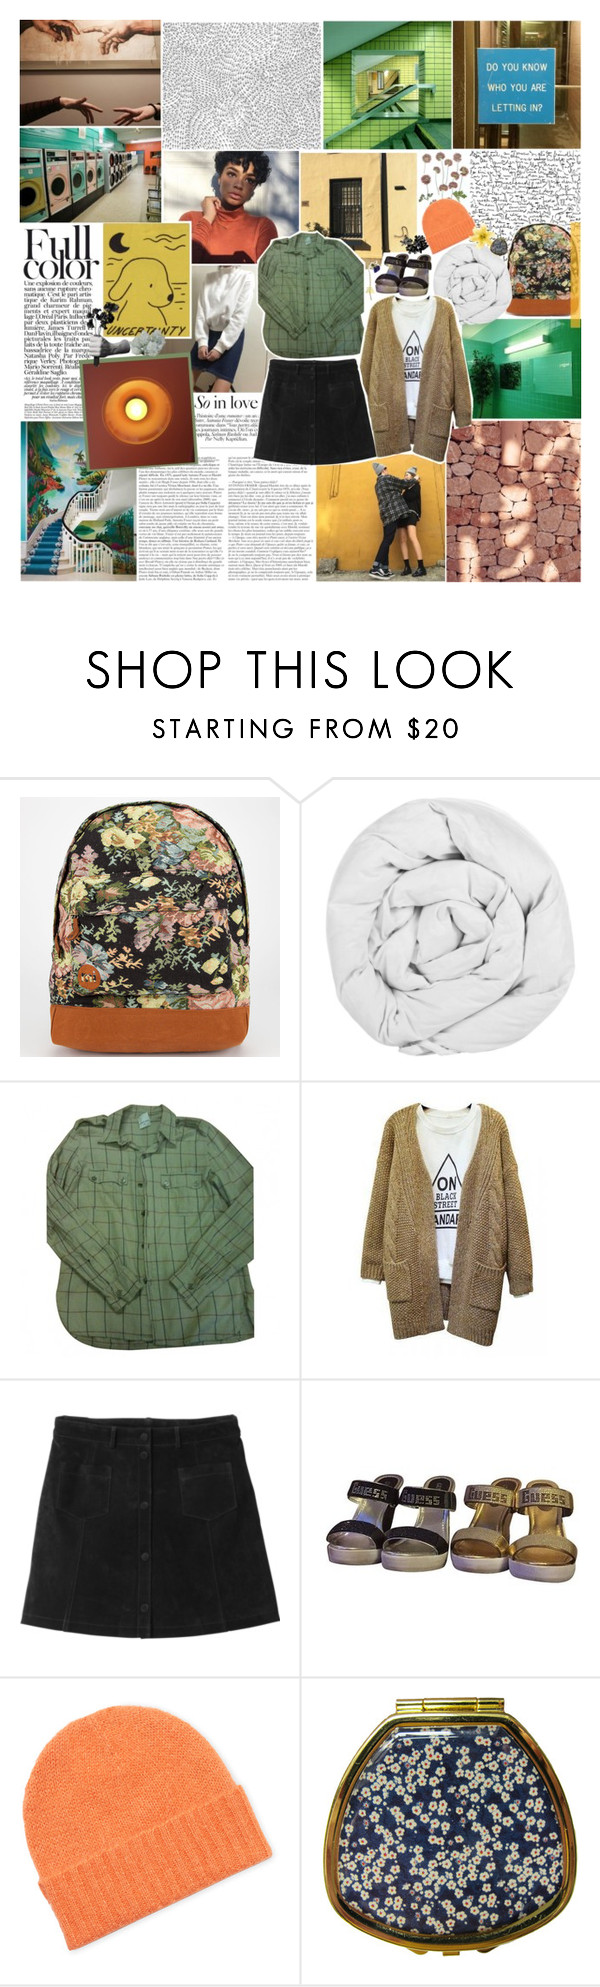 """05.05.16"" by gloomed ❤ liked on Polyvore featuring MANGO, Mi-Pac, The Fine Bedding Company, Laurence Doligé, Monki, Orla Kiely, Andrea Garland and Harry Allen"